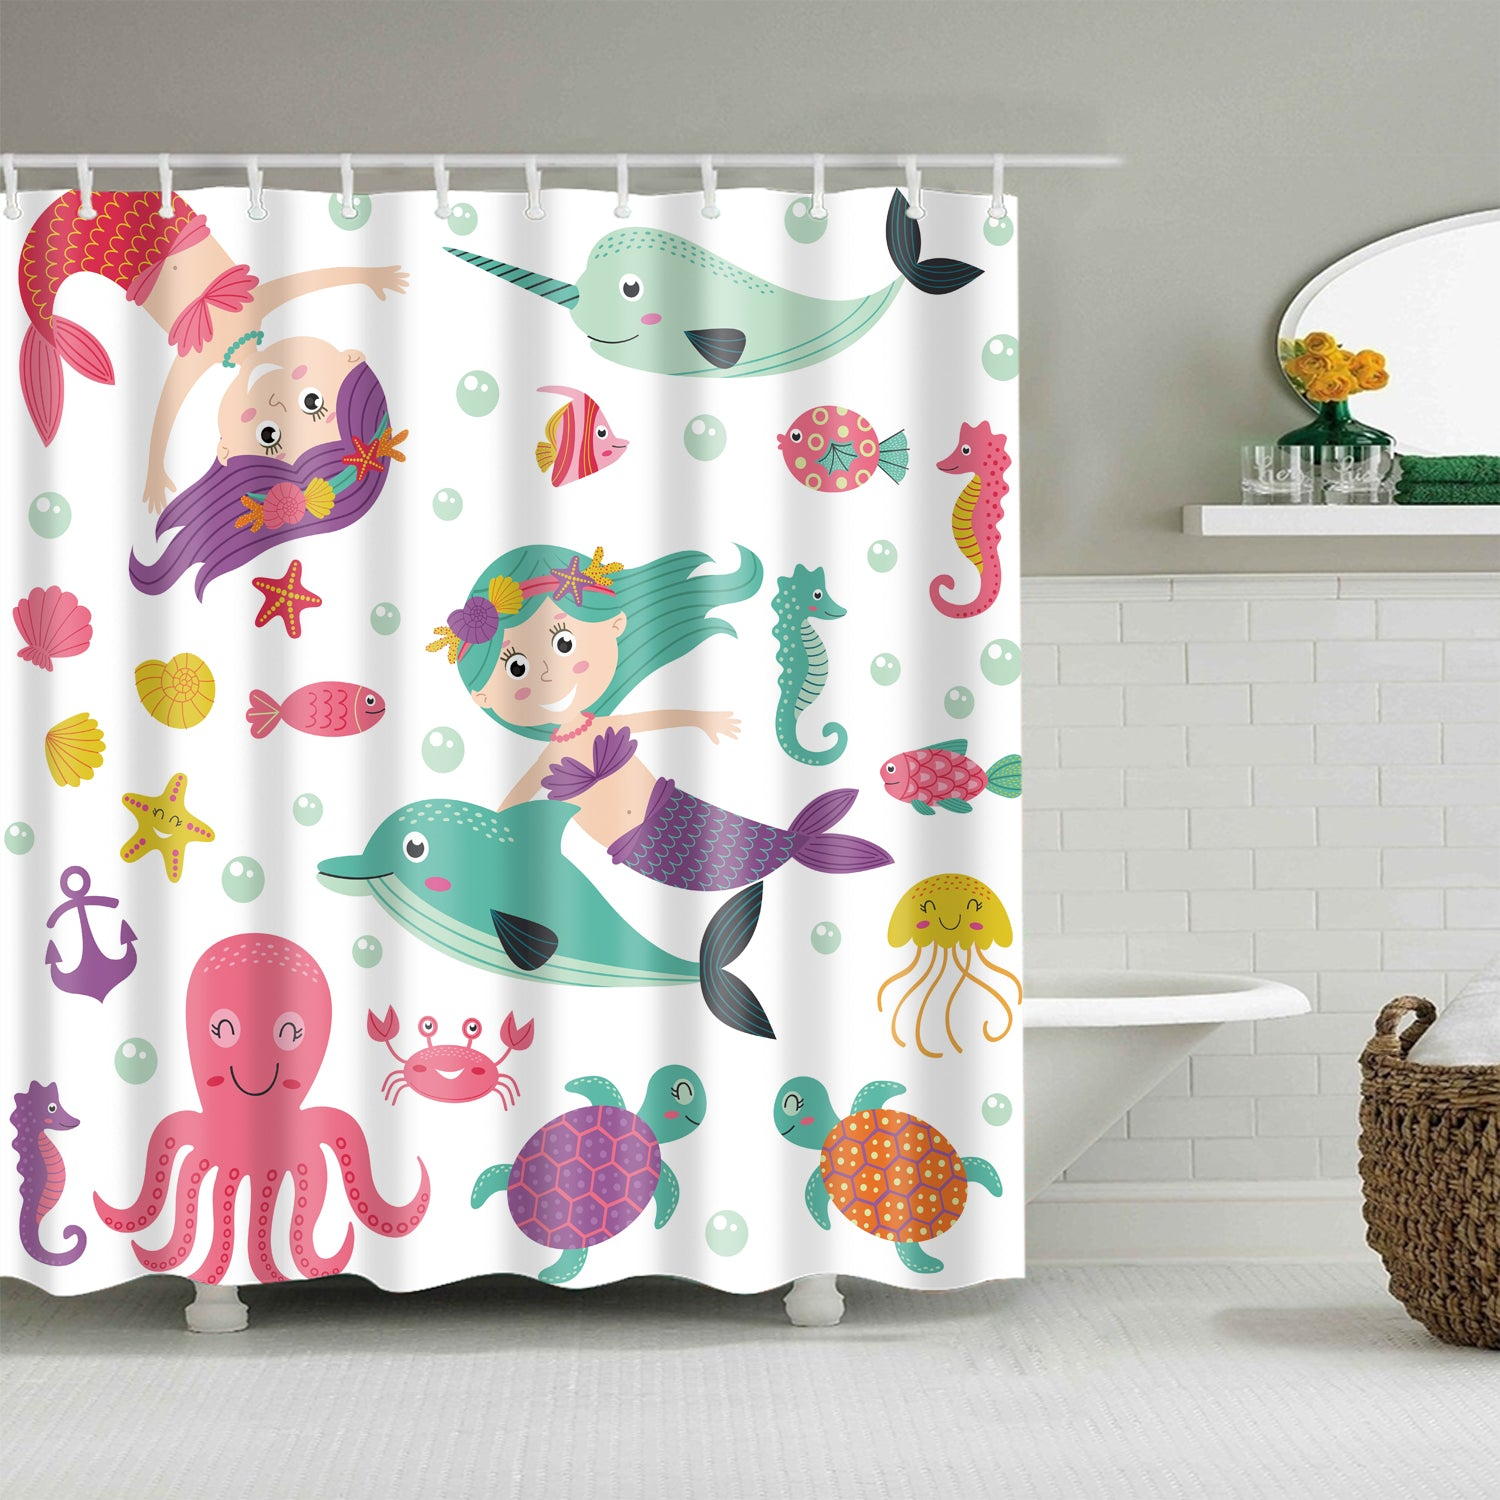 Cute Childhood Little Mermaid Marine Kids Cartoon Shower Curtain